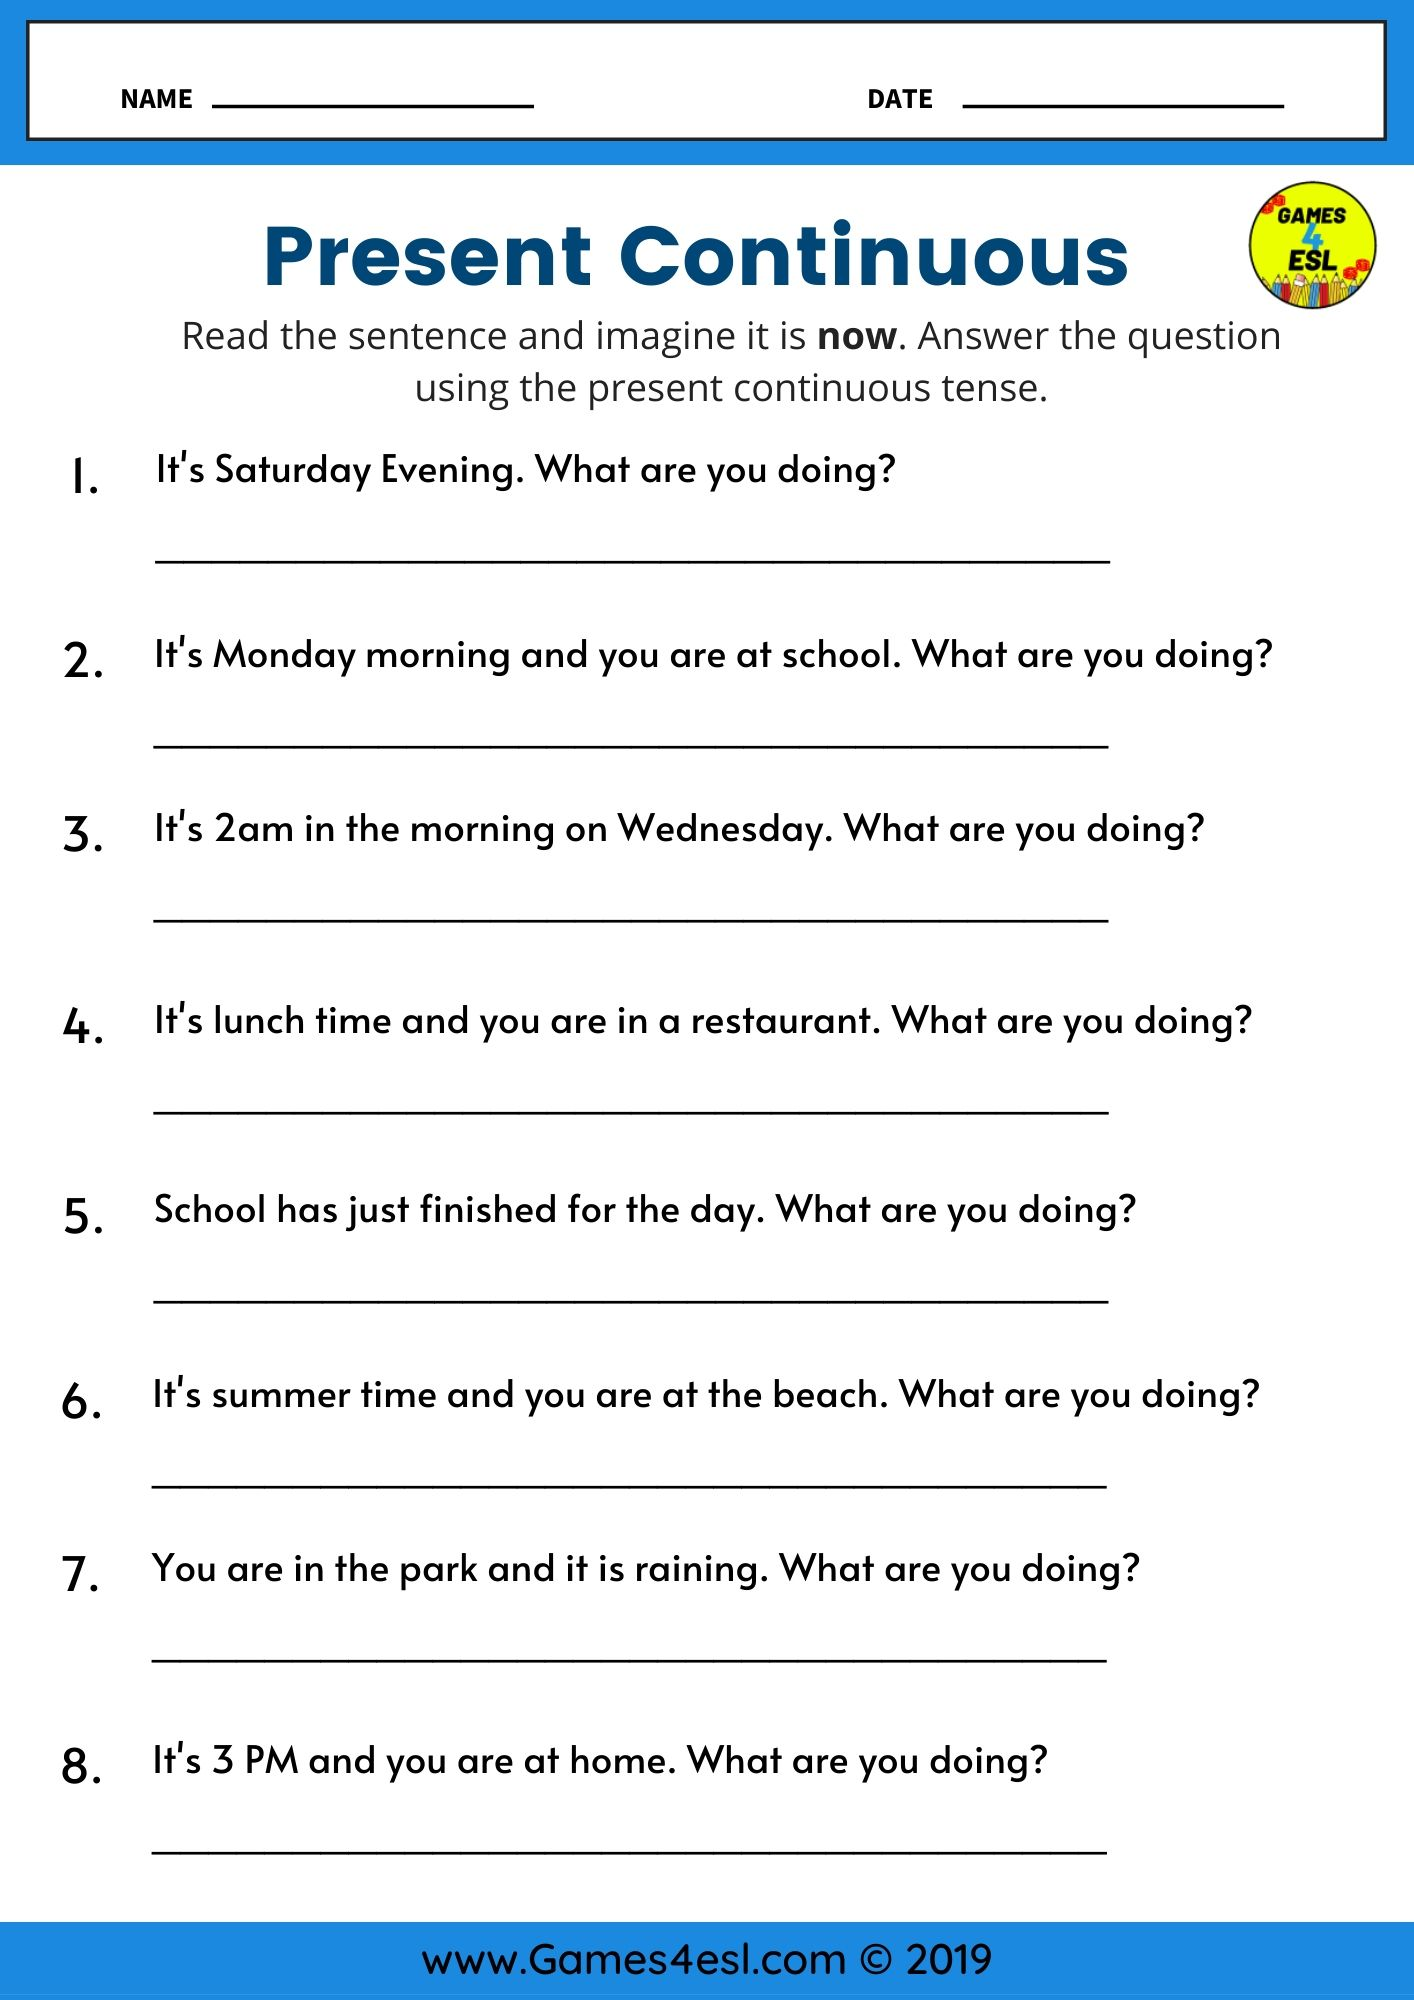 Present Continuous Questions Worksheet